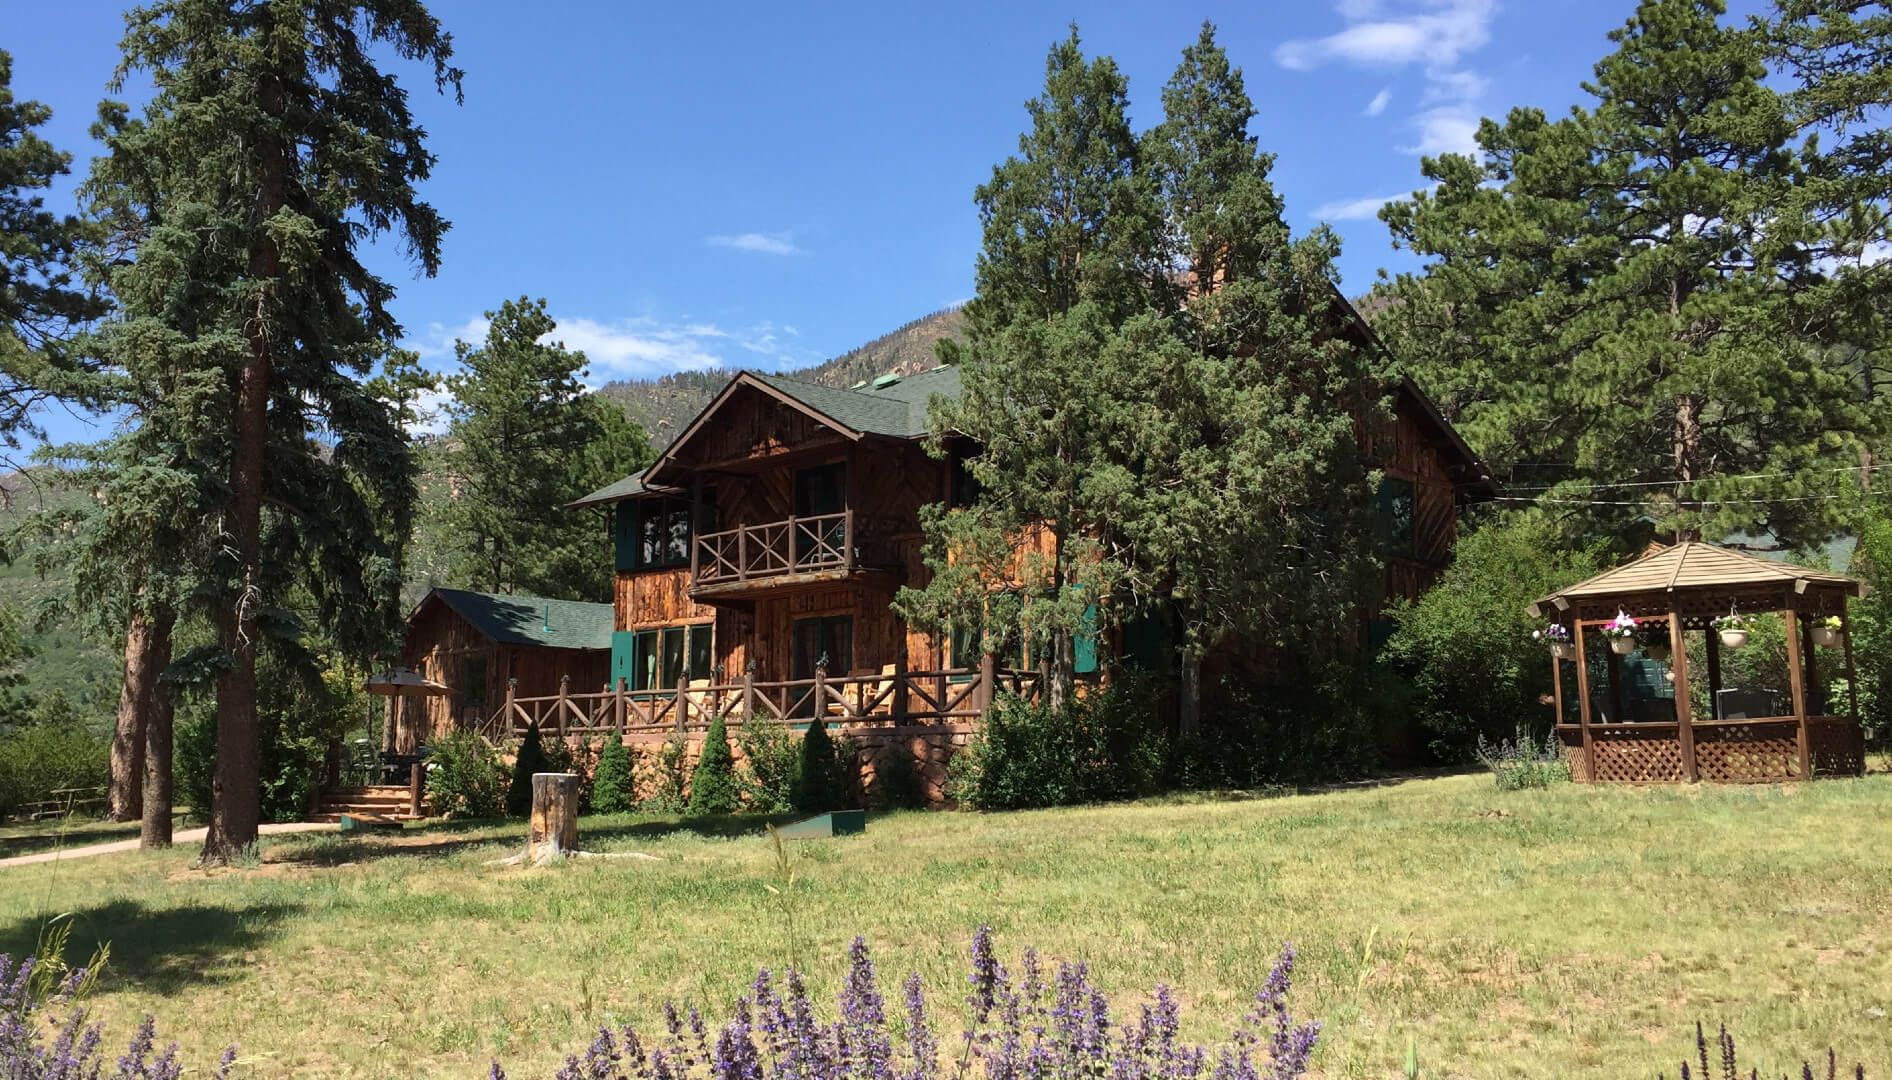 A house with a grass field at Rocky Mountain Lodge.